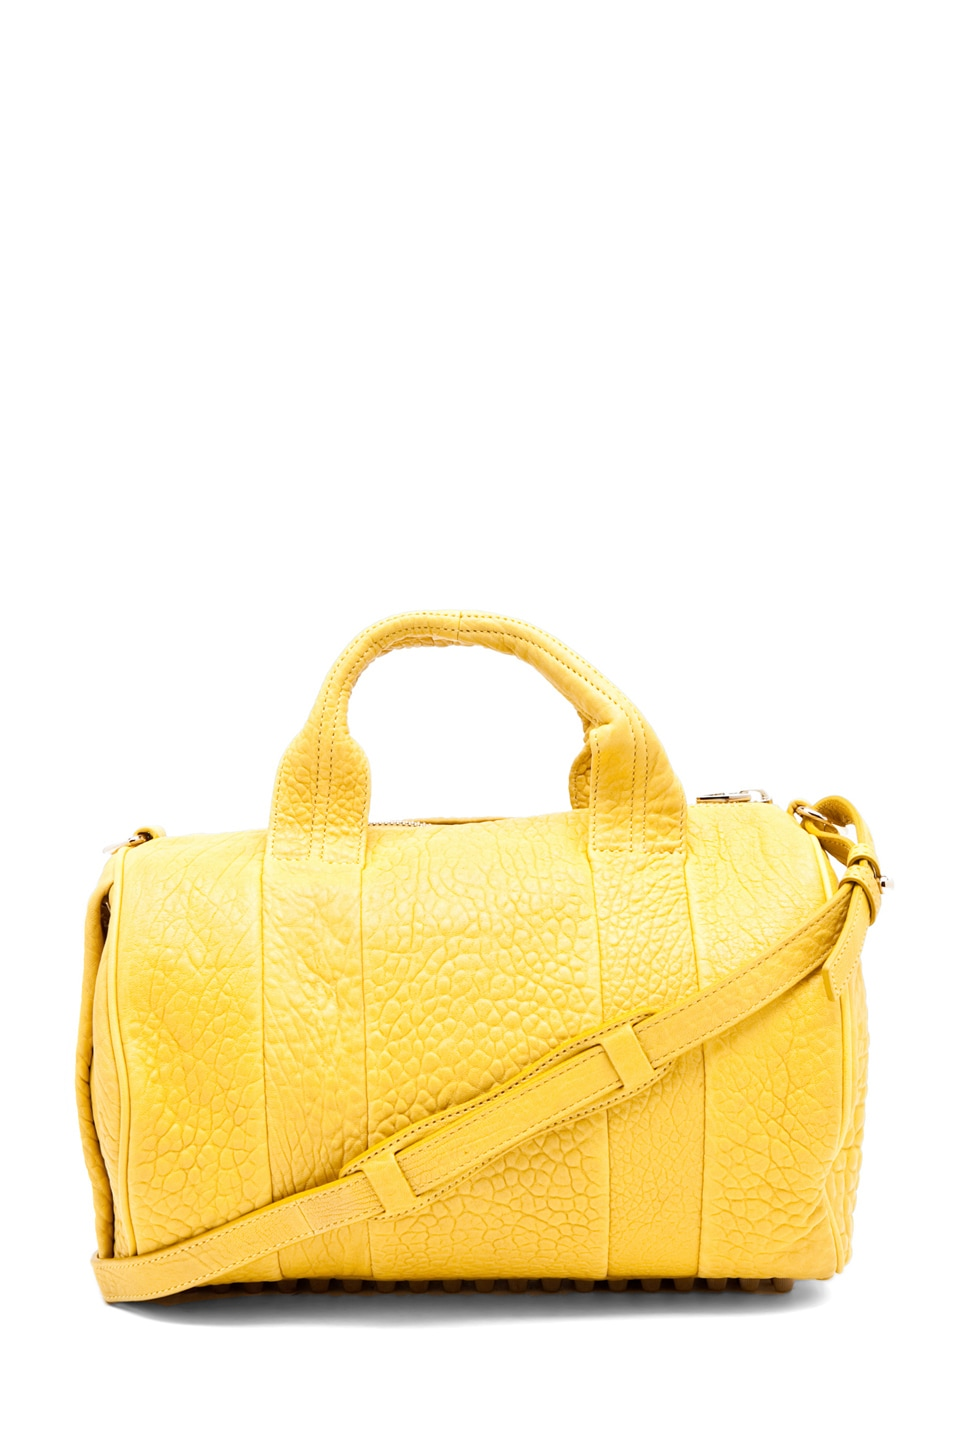 Image 1 of Alexander Wang Rocco Satchel in Citrus